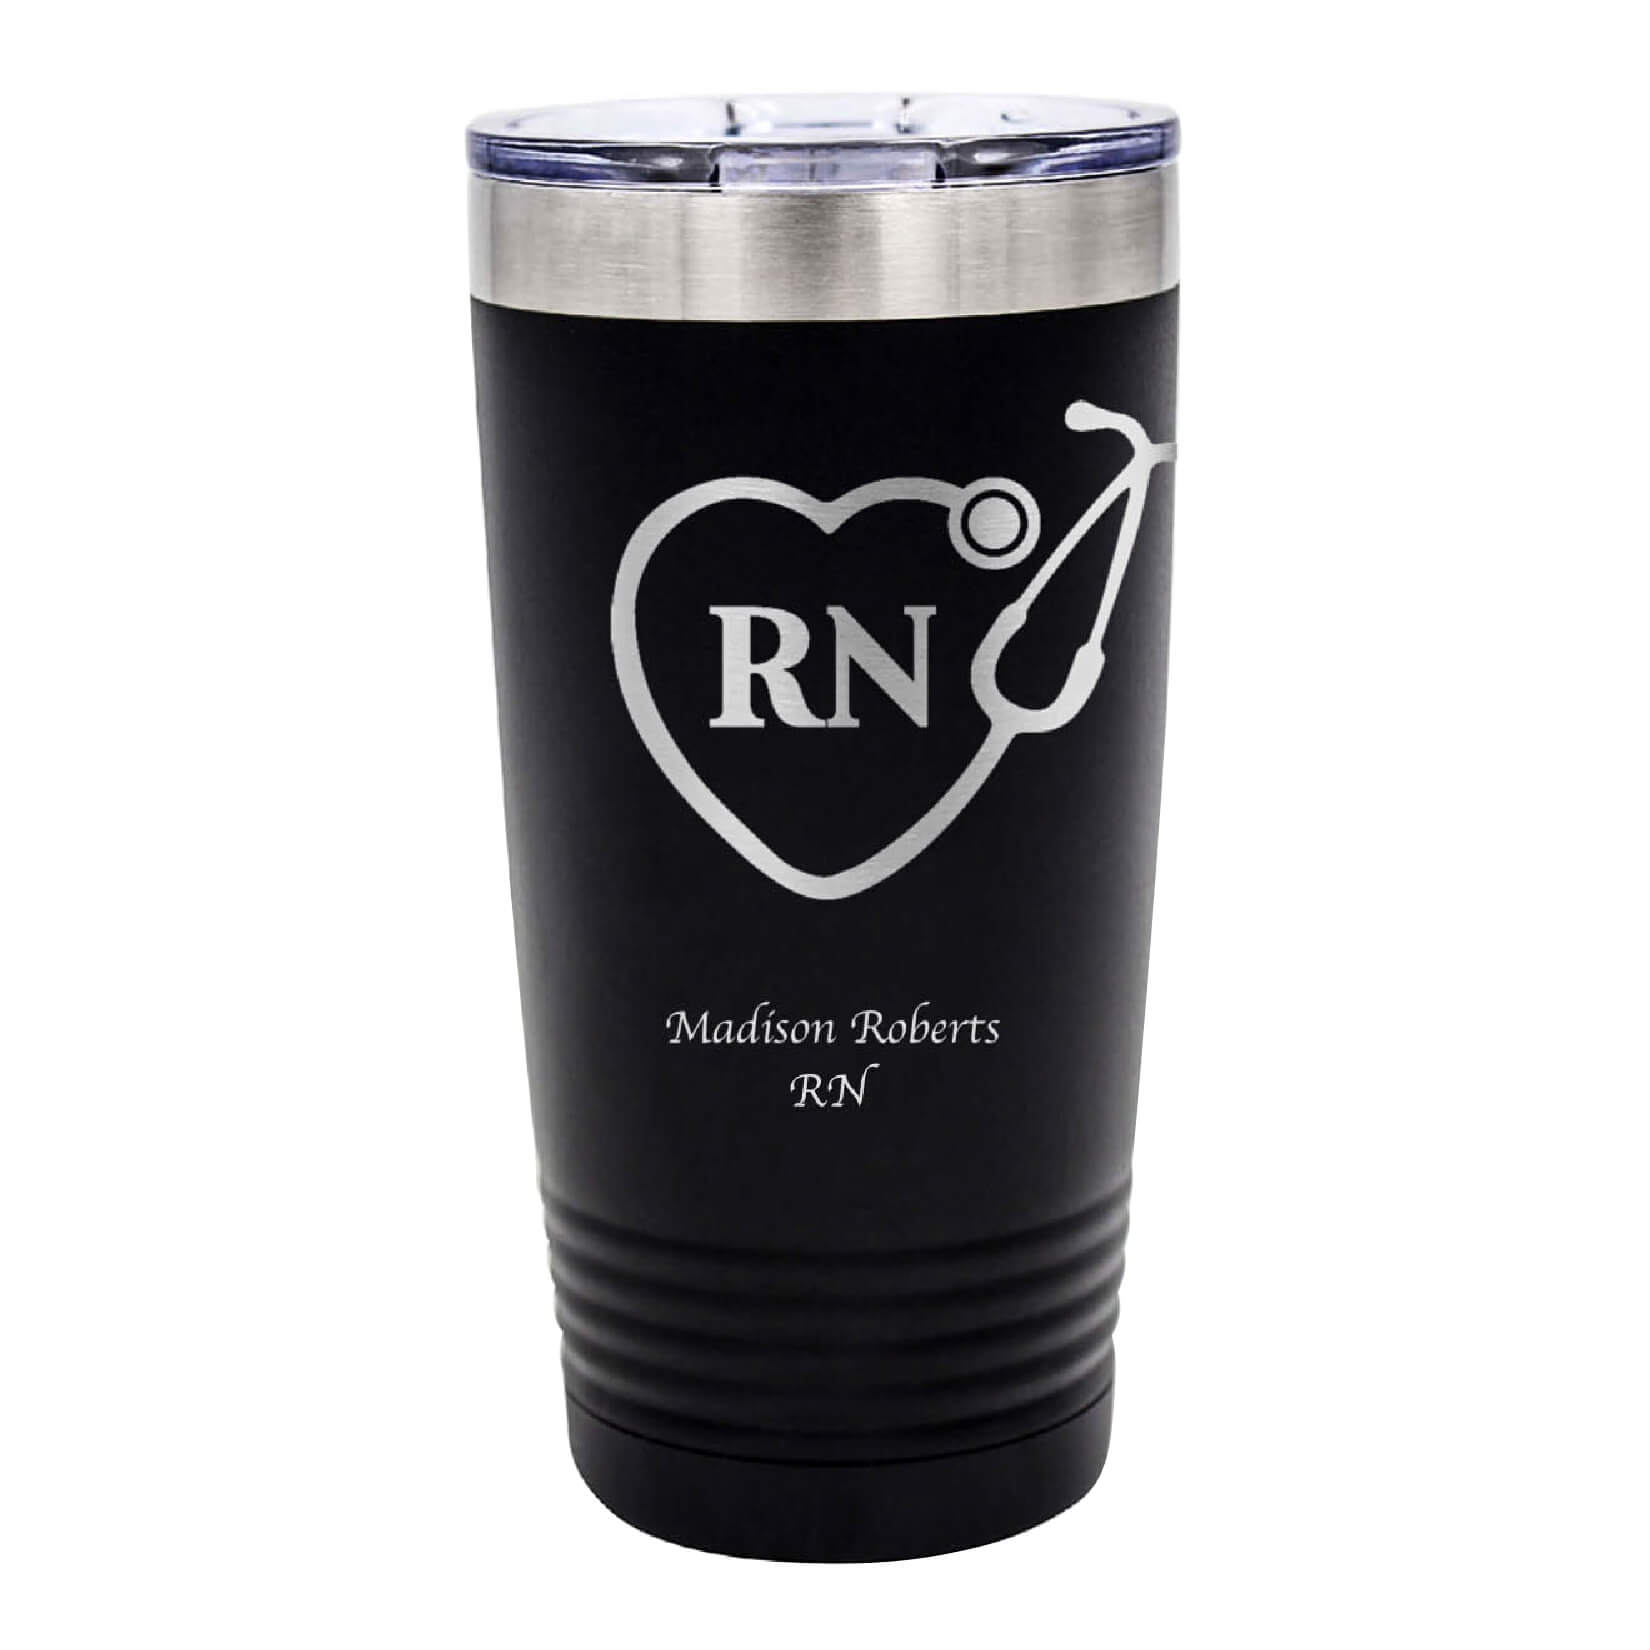 Registered Nurse Tumbler